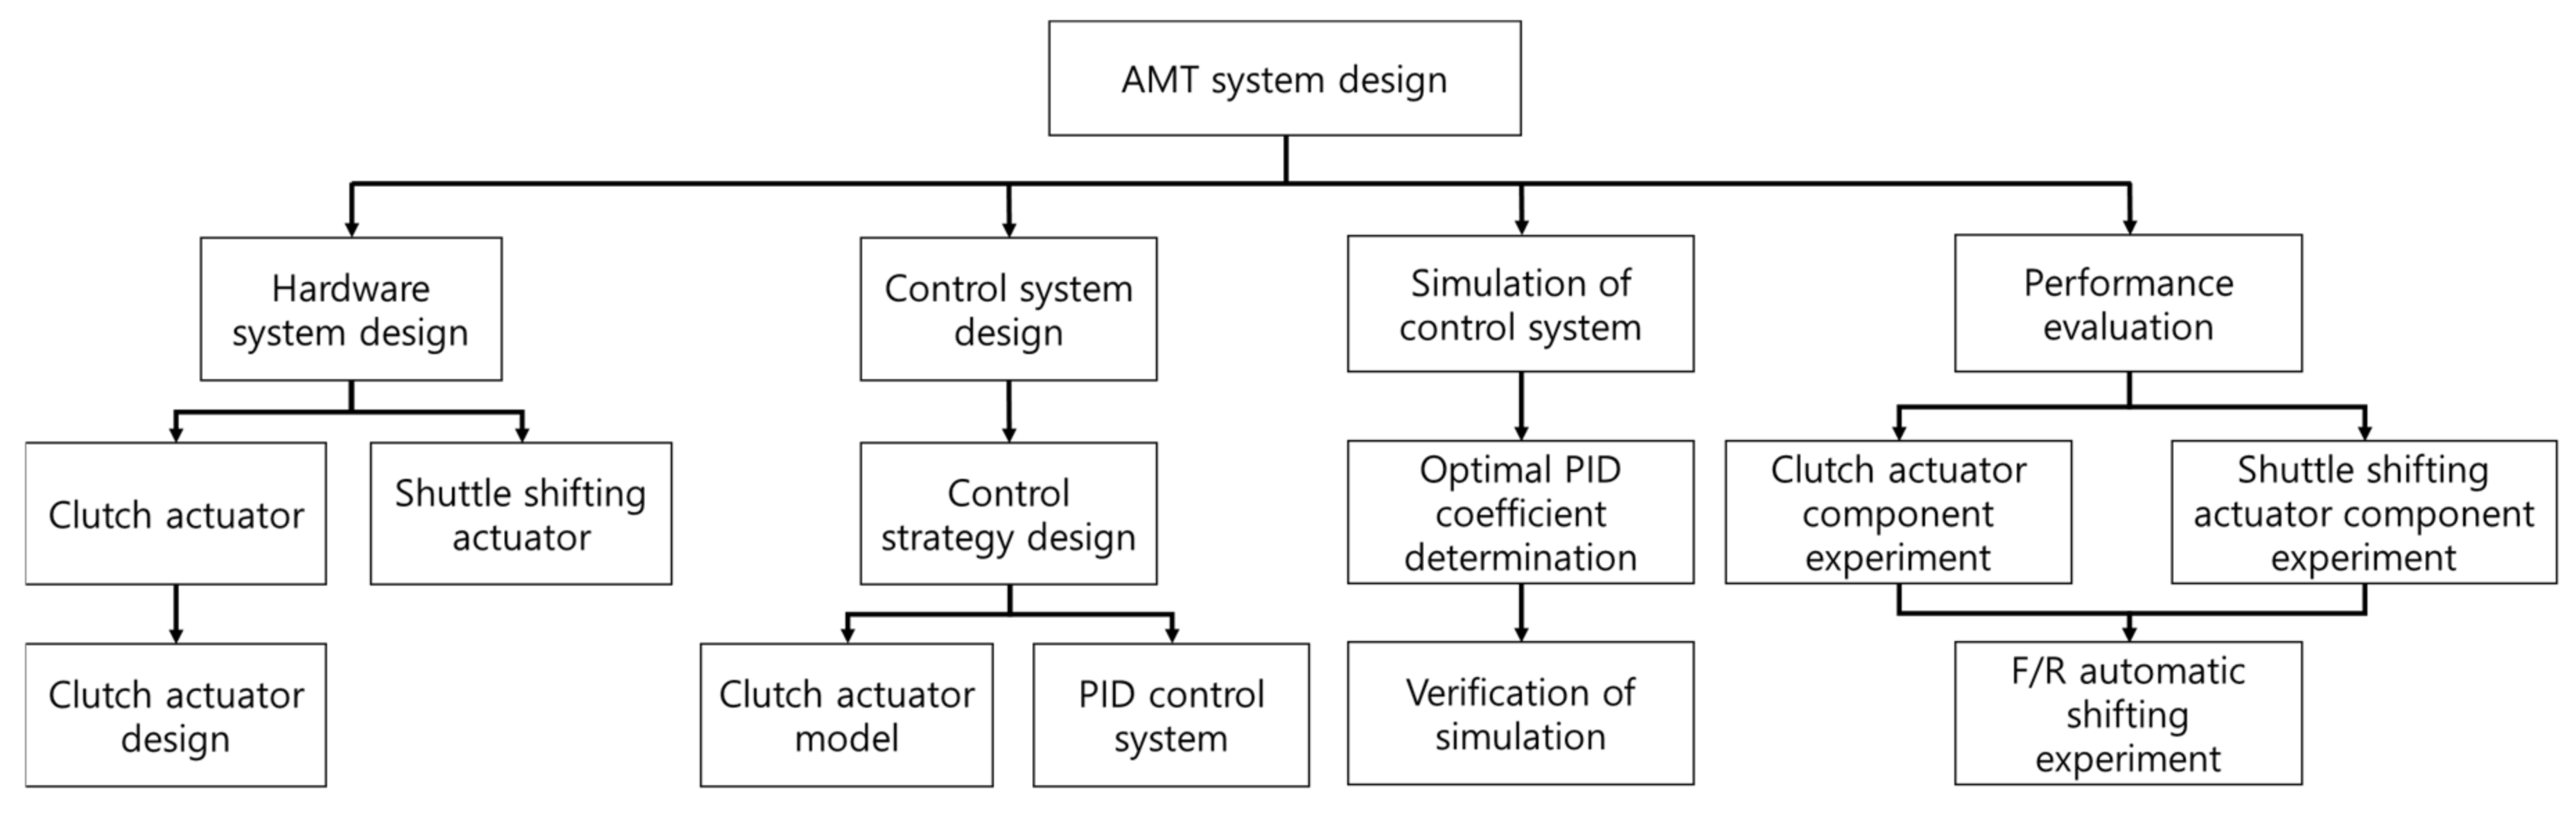 Applied Sciences Free Full Text Development Of Control System For Automated Manual Transmission Of 45 Kw Agricultural Tractor Html